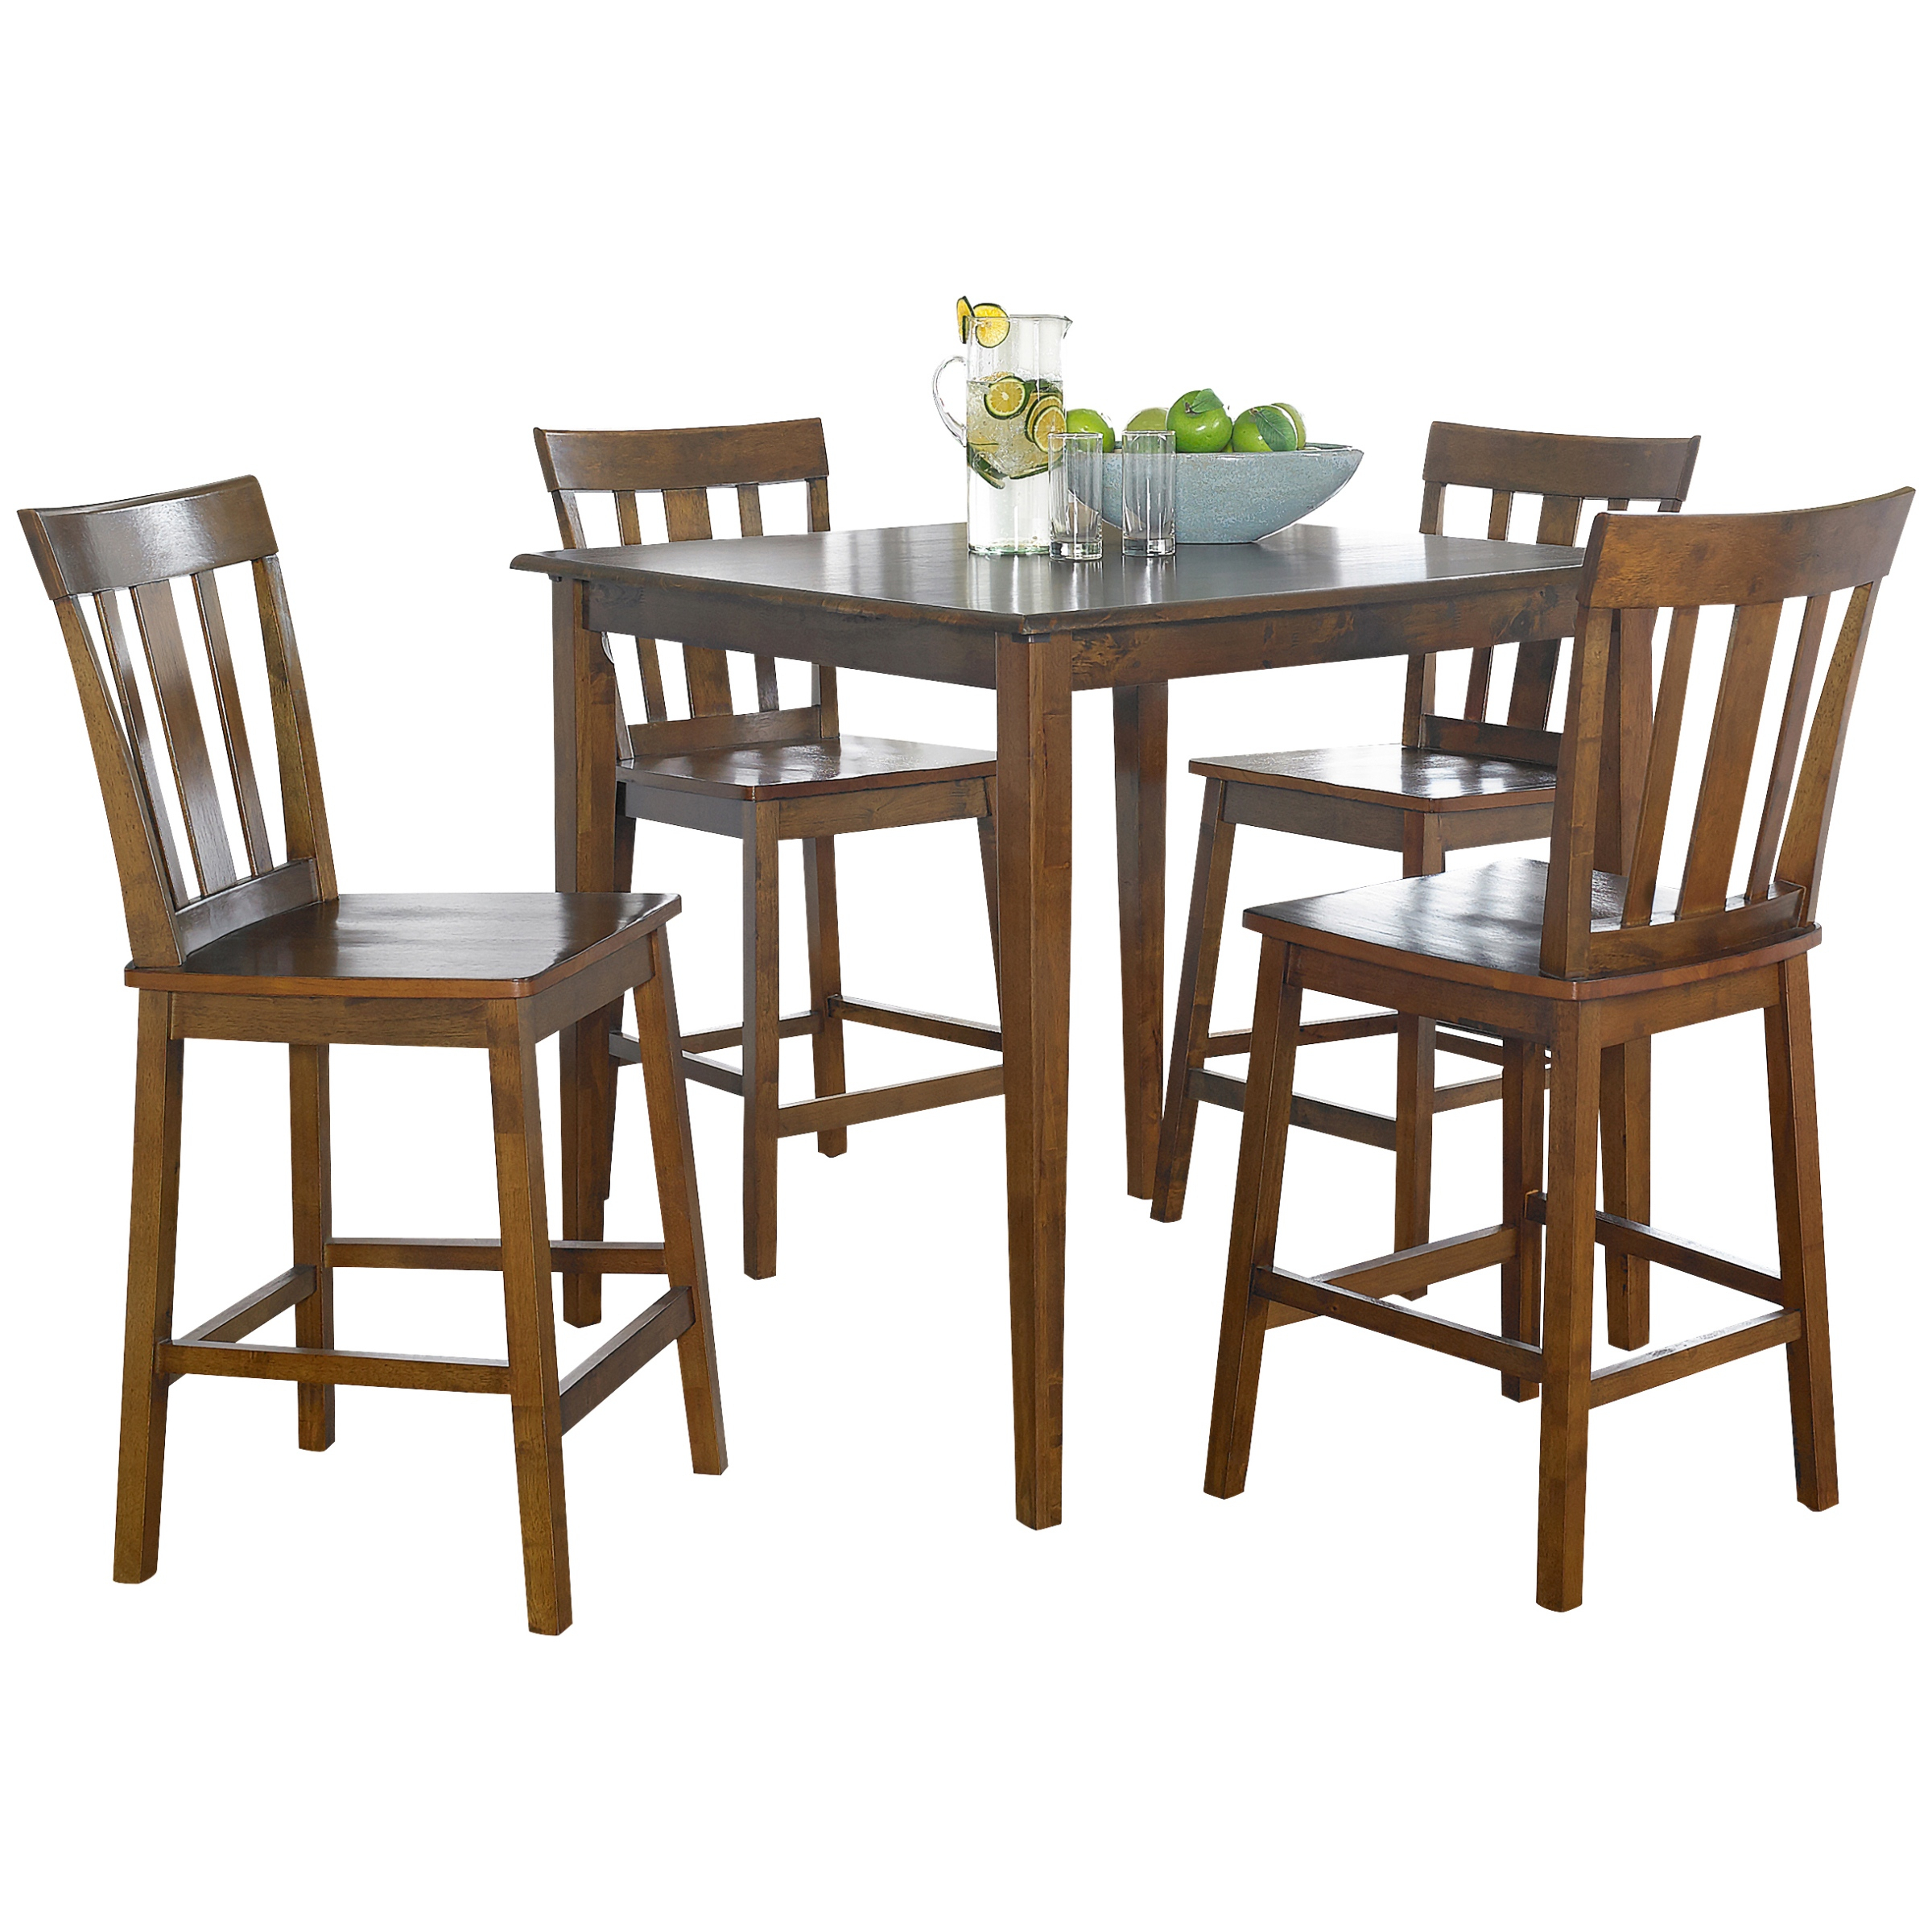 Mainstays 5 Piece Mission Counter Height Dining Set – Walmart Inside Popular Goodman 5 Piece Solid Wood Dining Sets (Set Of 5) (View 11 of 20)